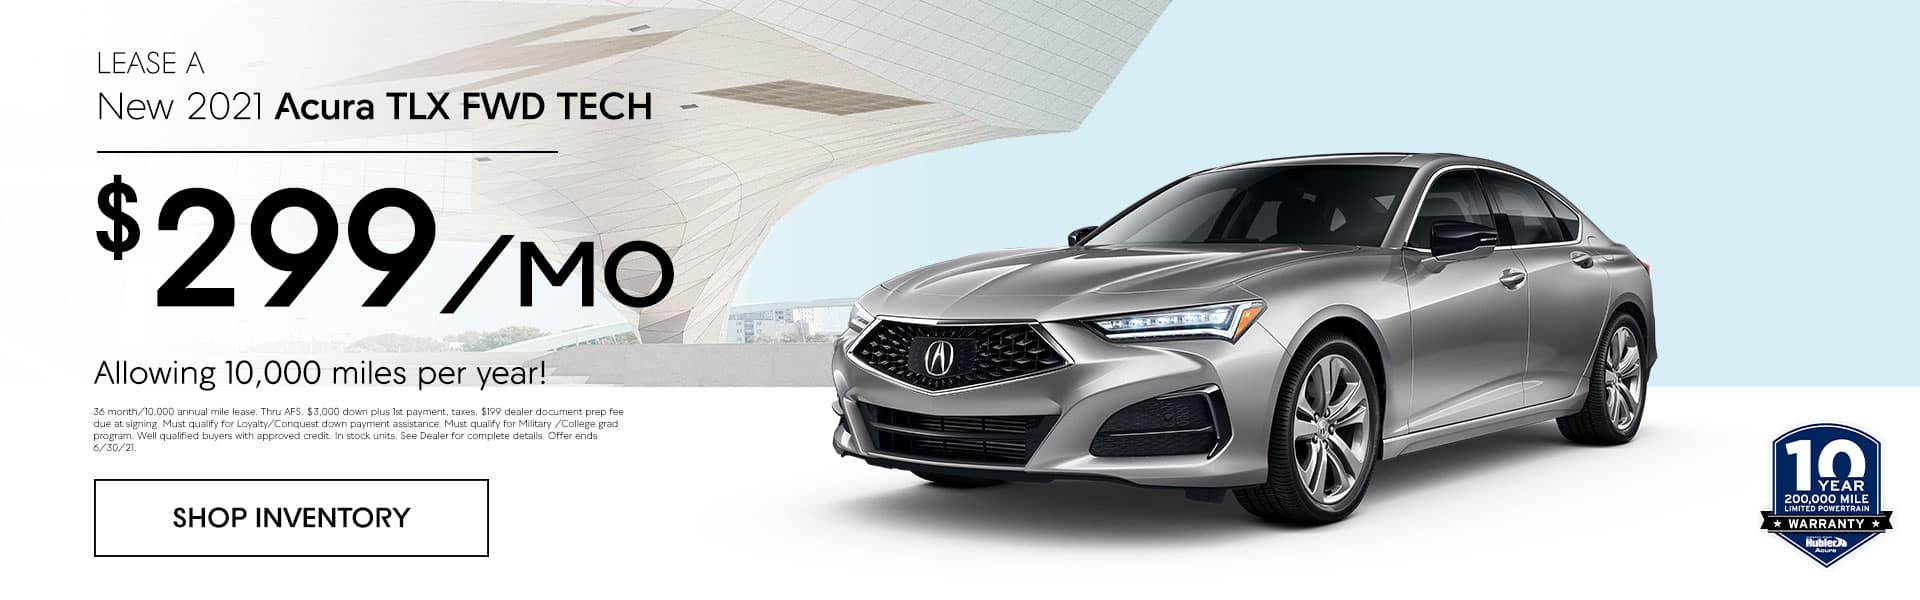 2021 Acura TLX FWD TECH just $ 299.00 per month per year! Allowing 10,000 miles